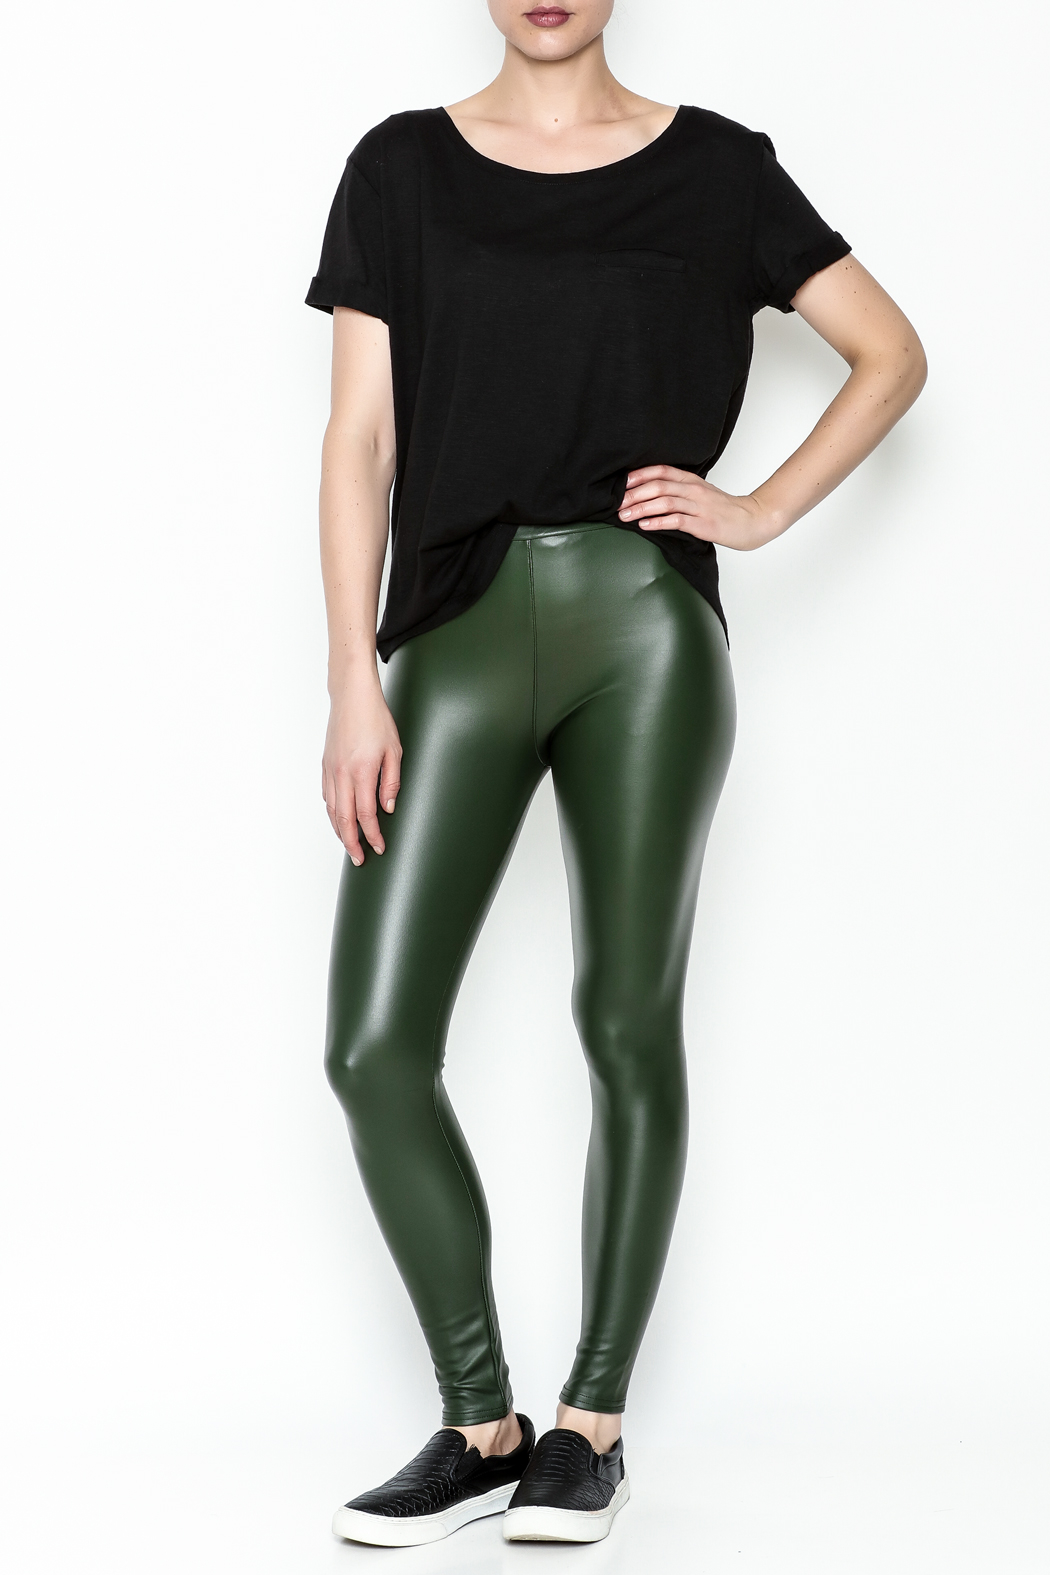 Polly & Esther Pleather Leggings - Side Cropped Image